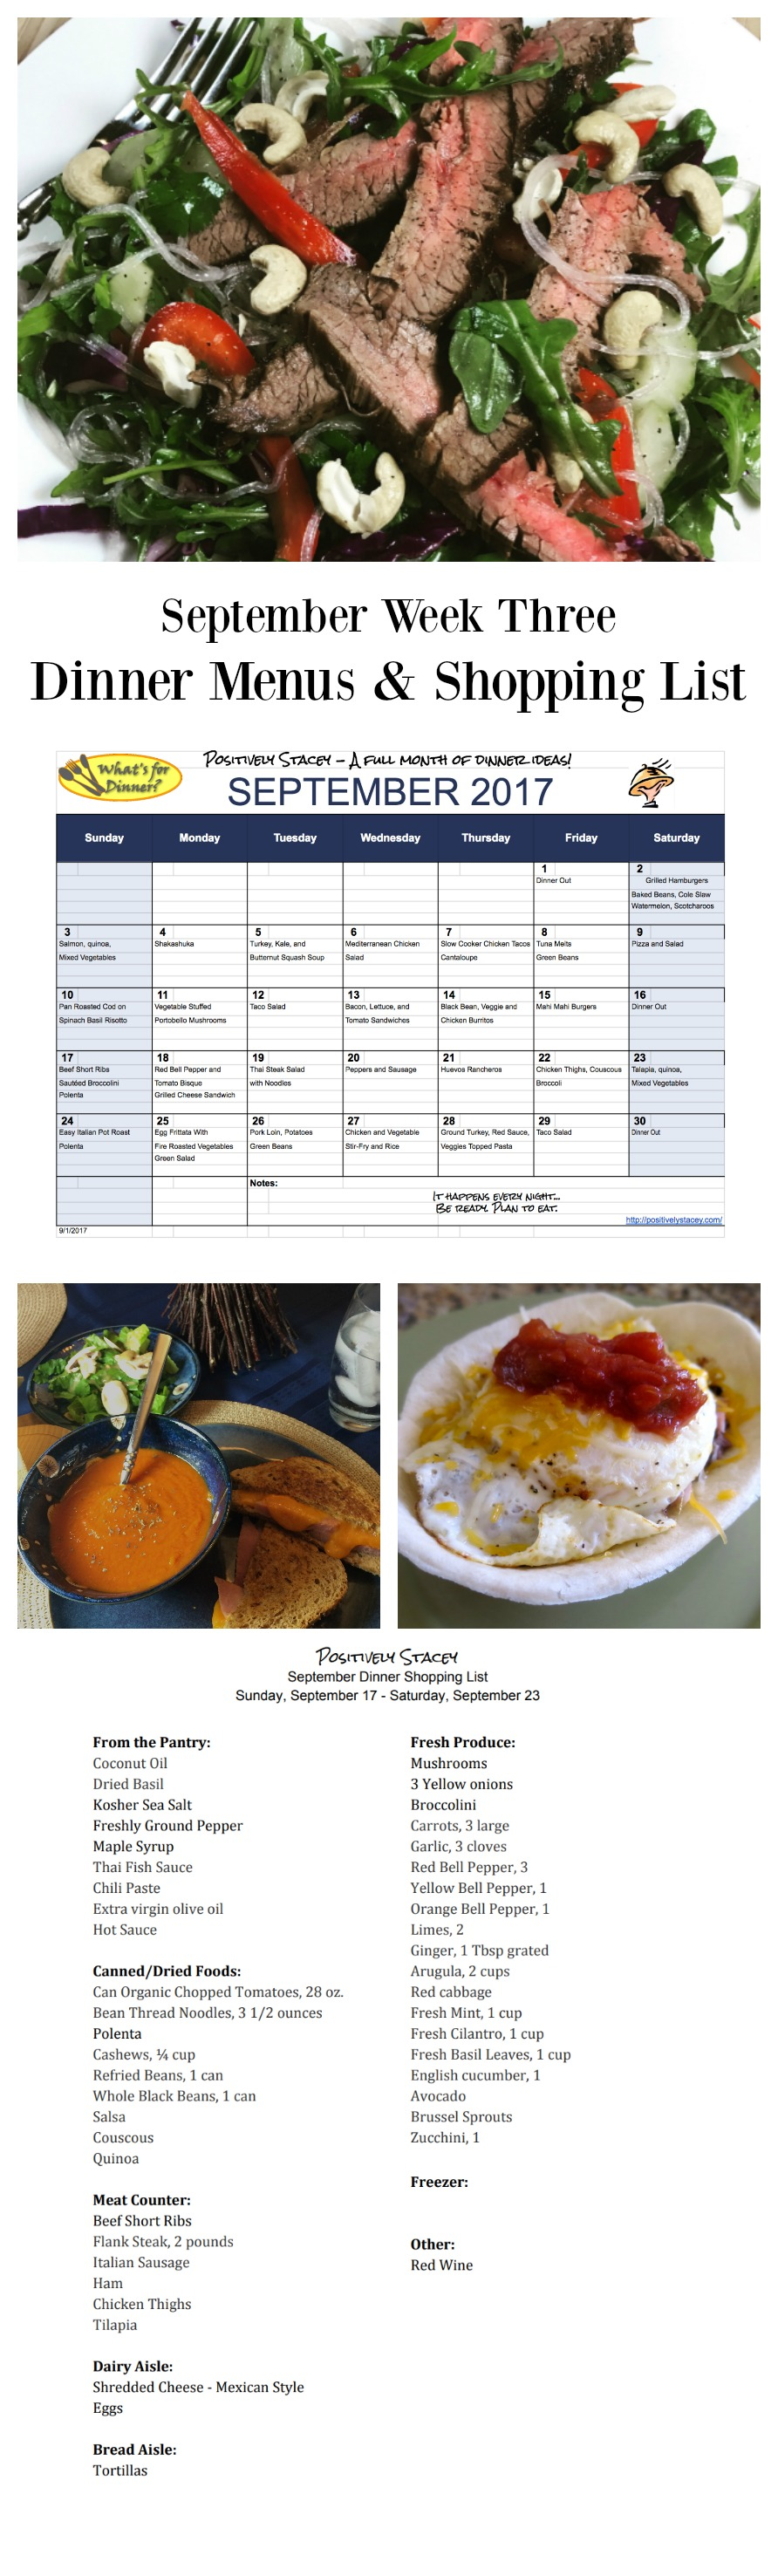 September Week Three Dinner Menus and Shopping List